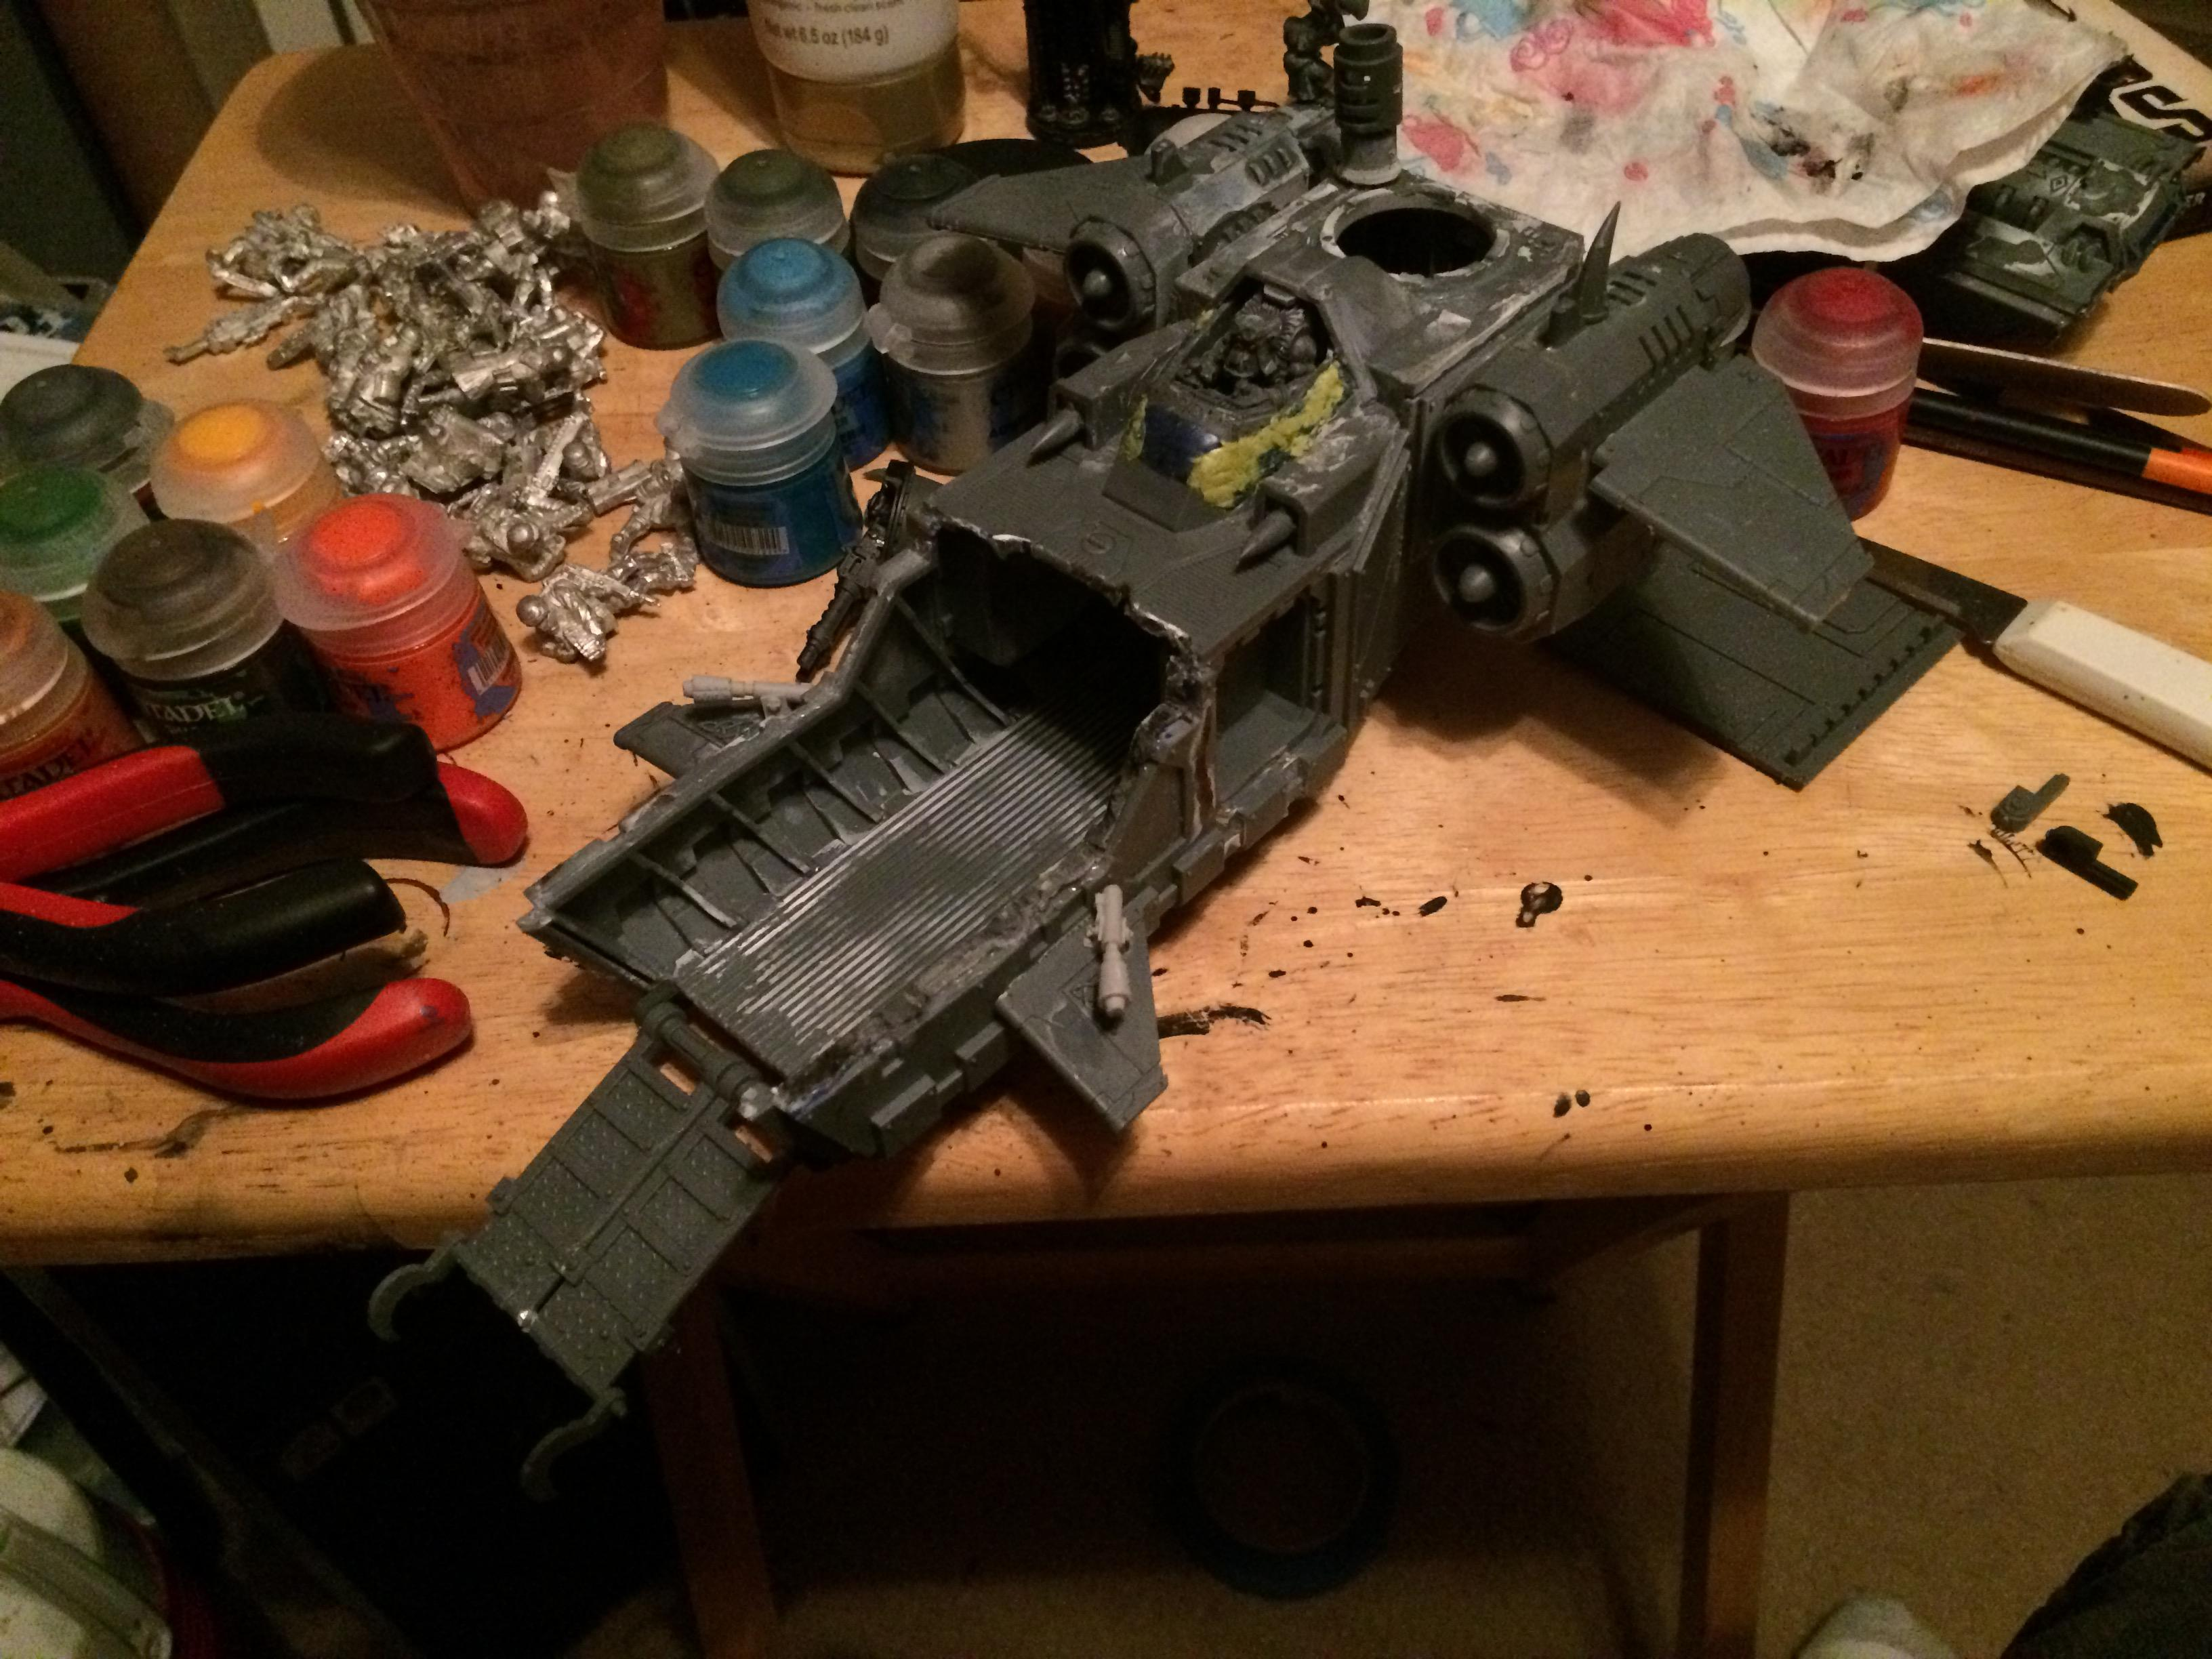 New putty to fill in the gaps and attached assault ramp